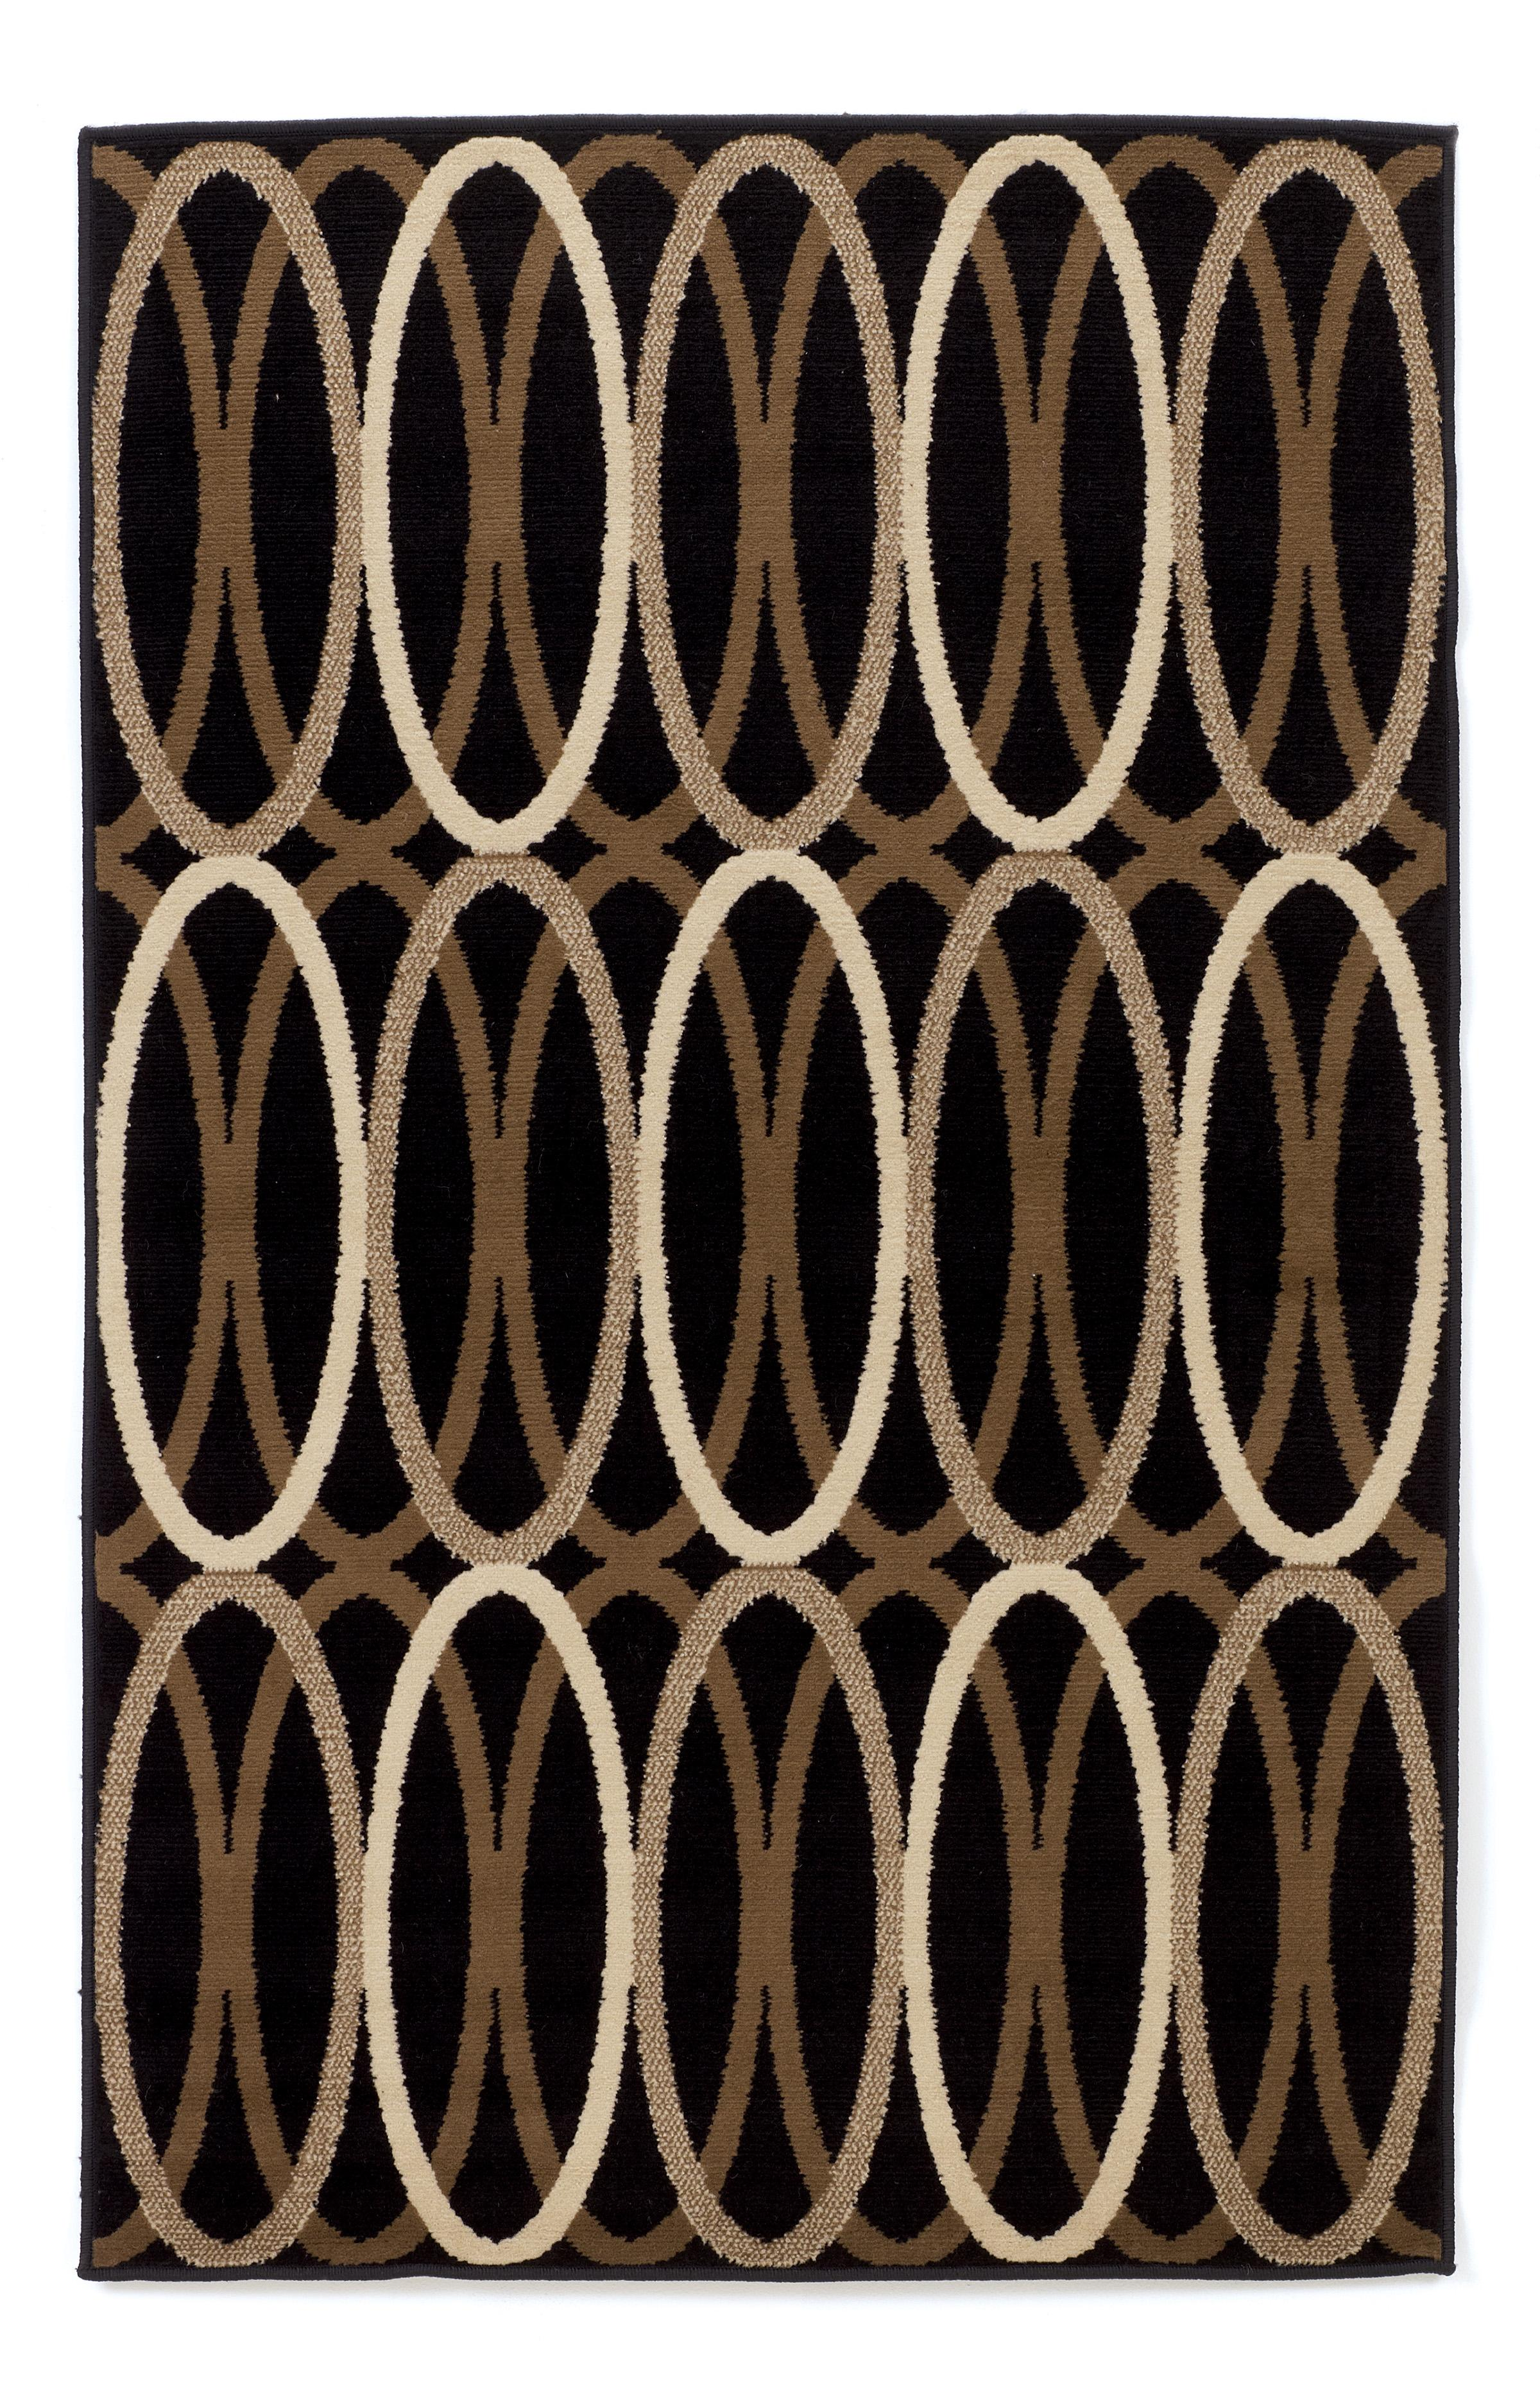 Signature Design by Ashley Contemporary Area Rugs Kyle - Clay Area Rug - Item Number: R268002